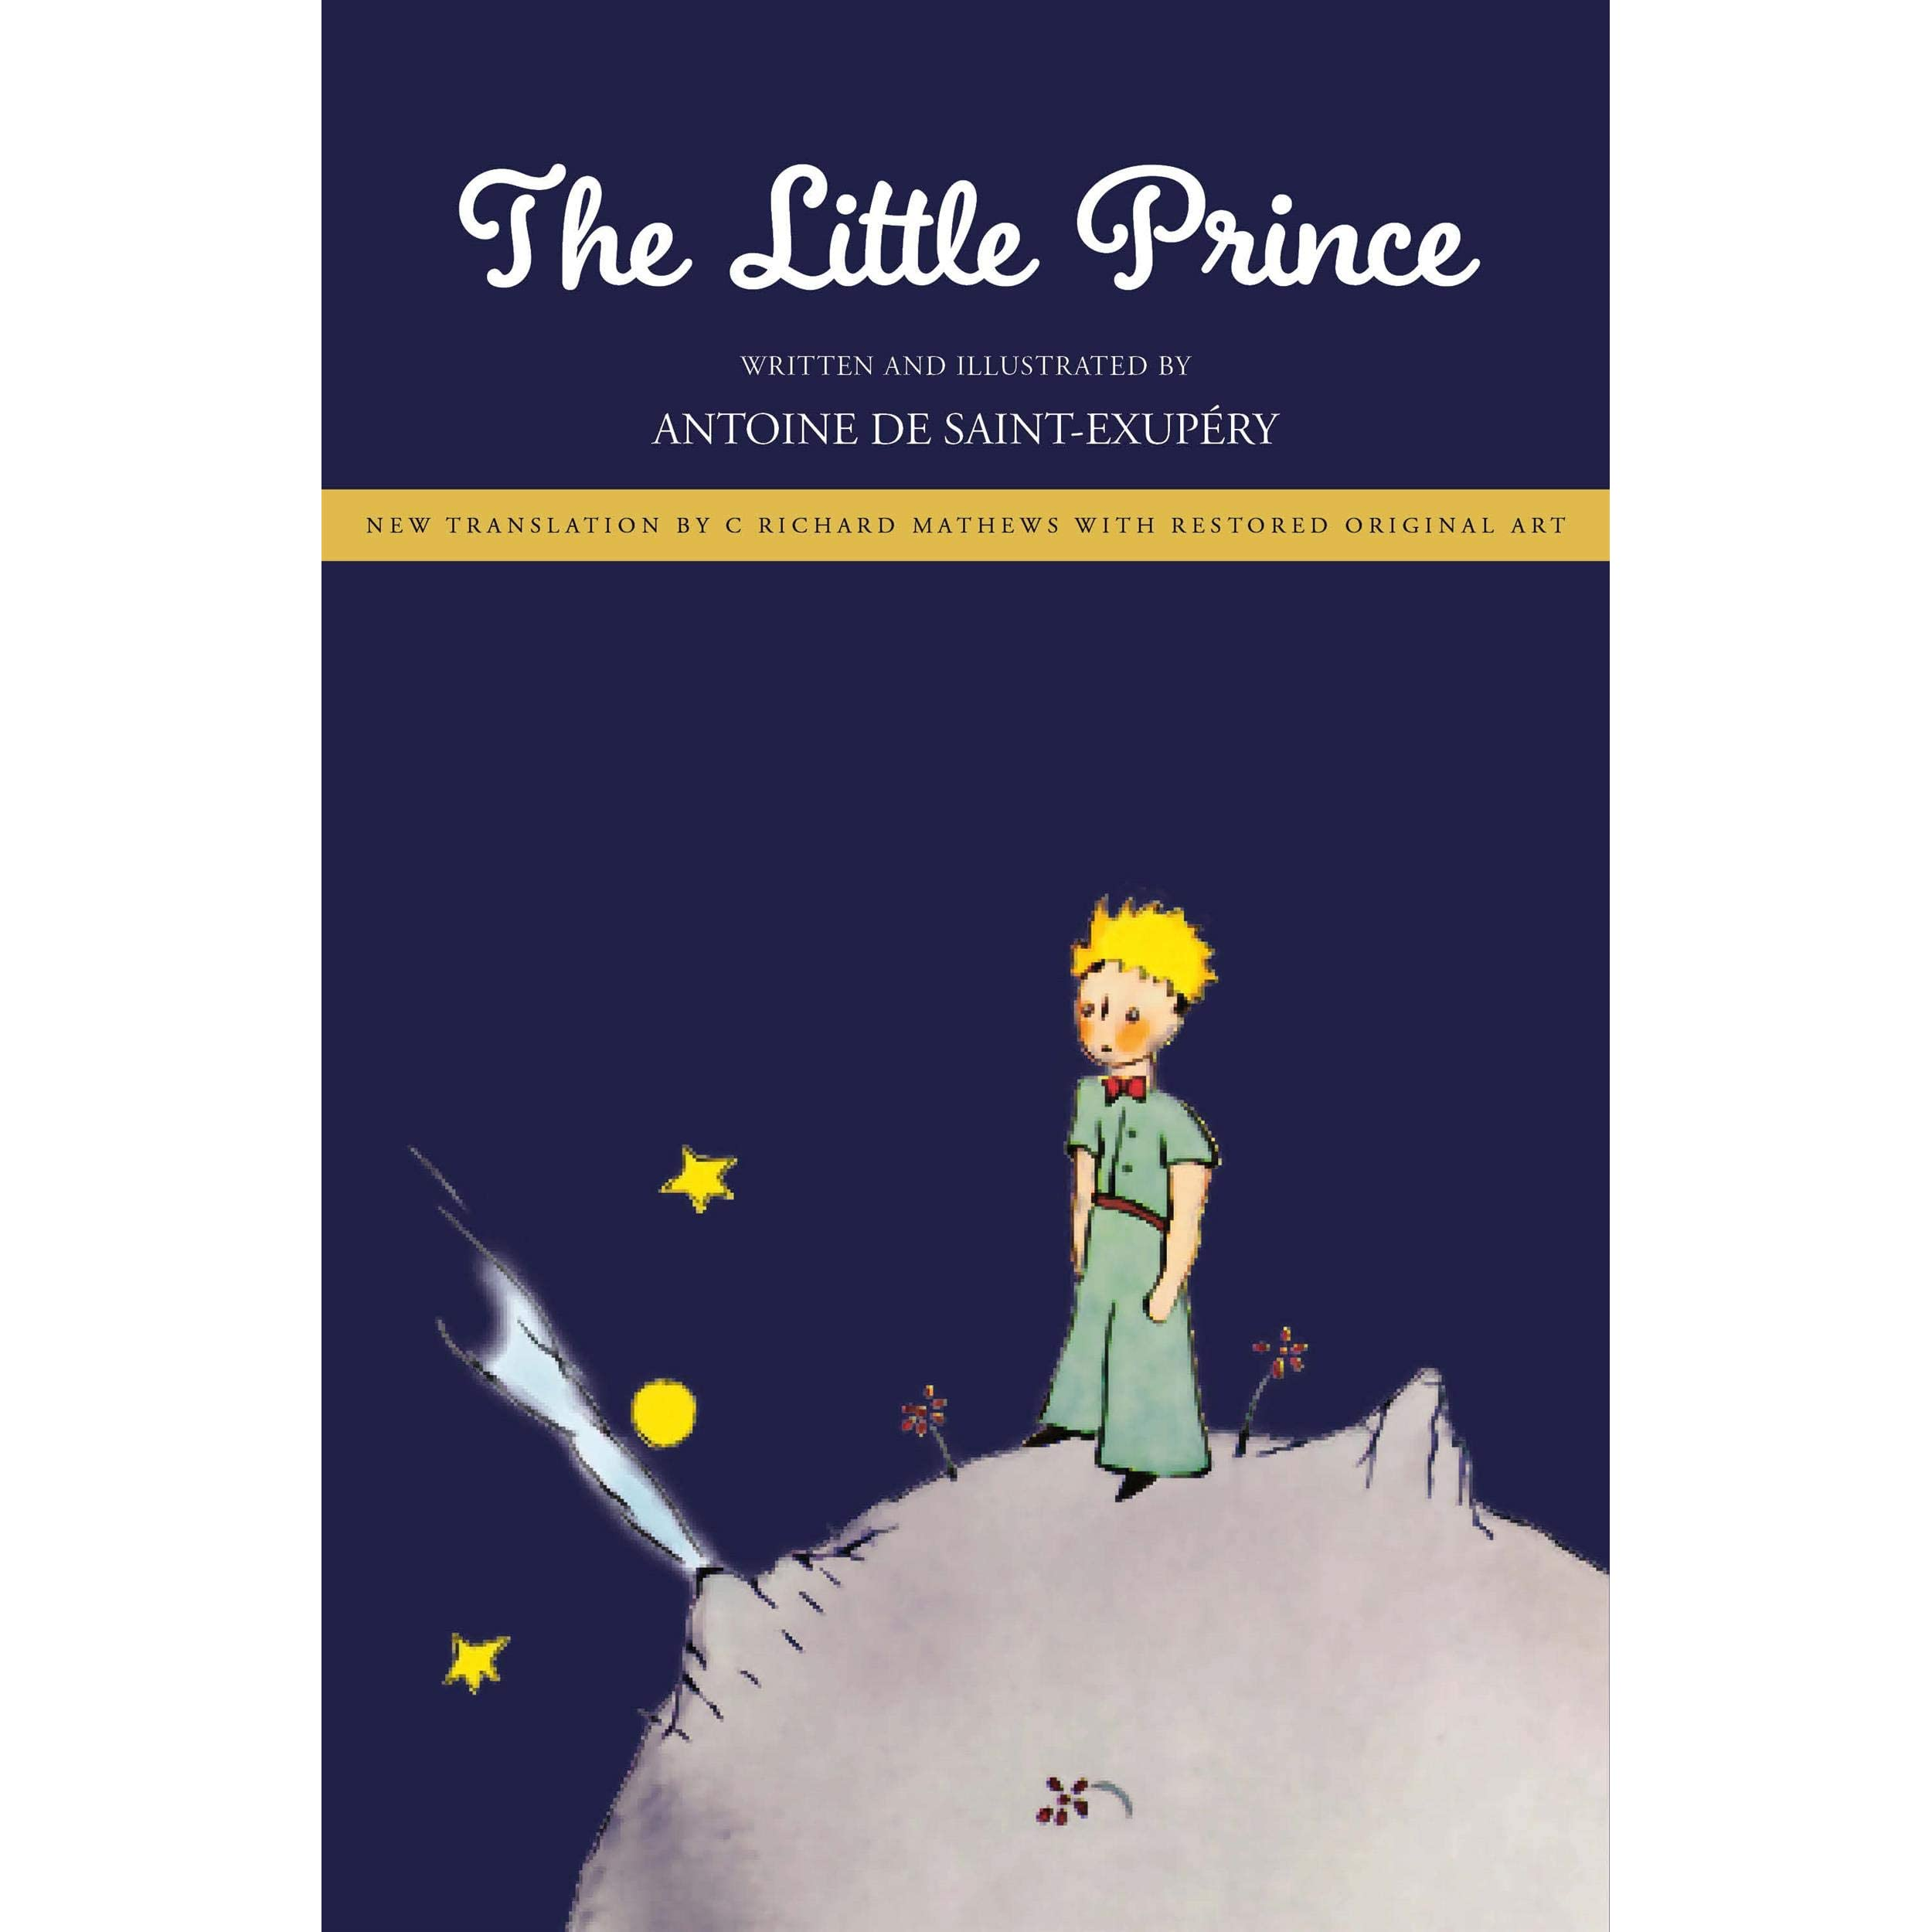 The Little Prince New Translation By Richard Mathews With Restored Original Art By Antoine De Saint